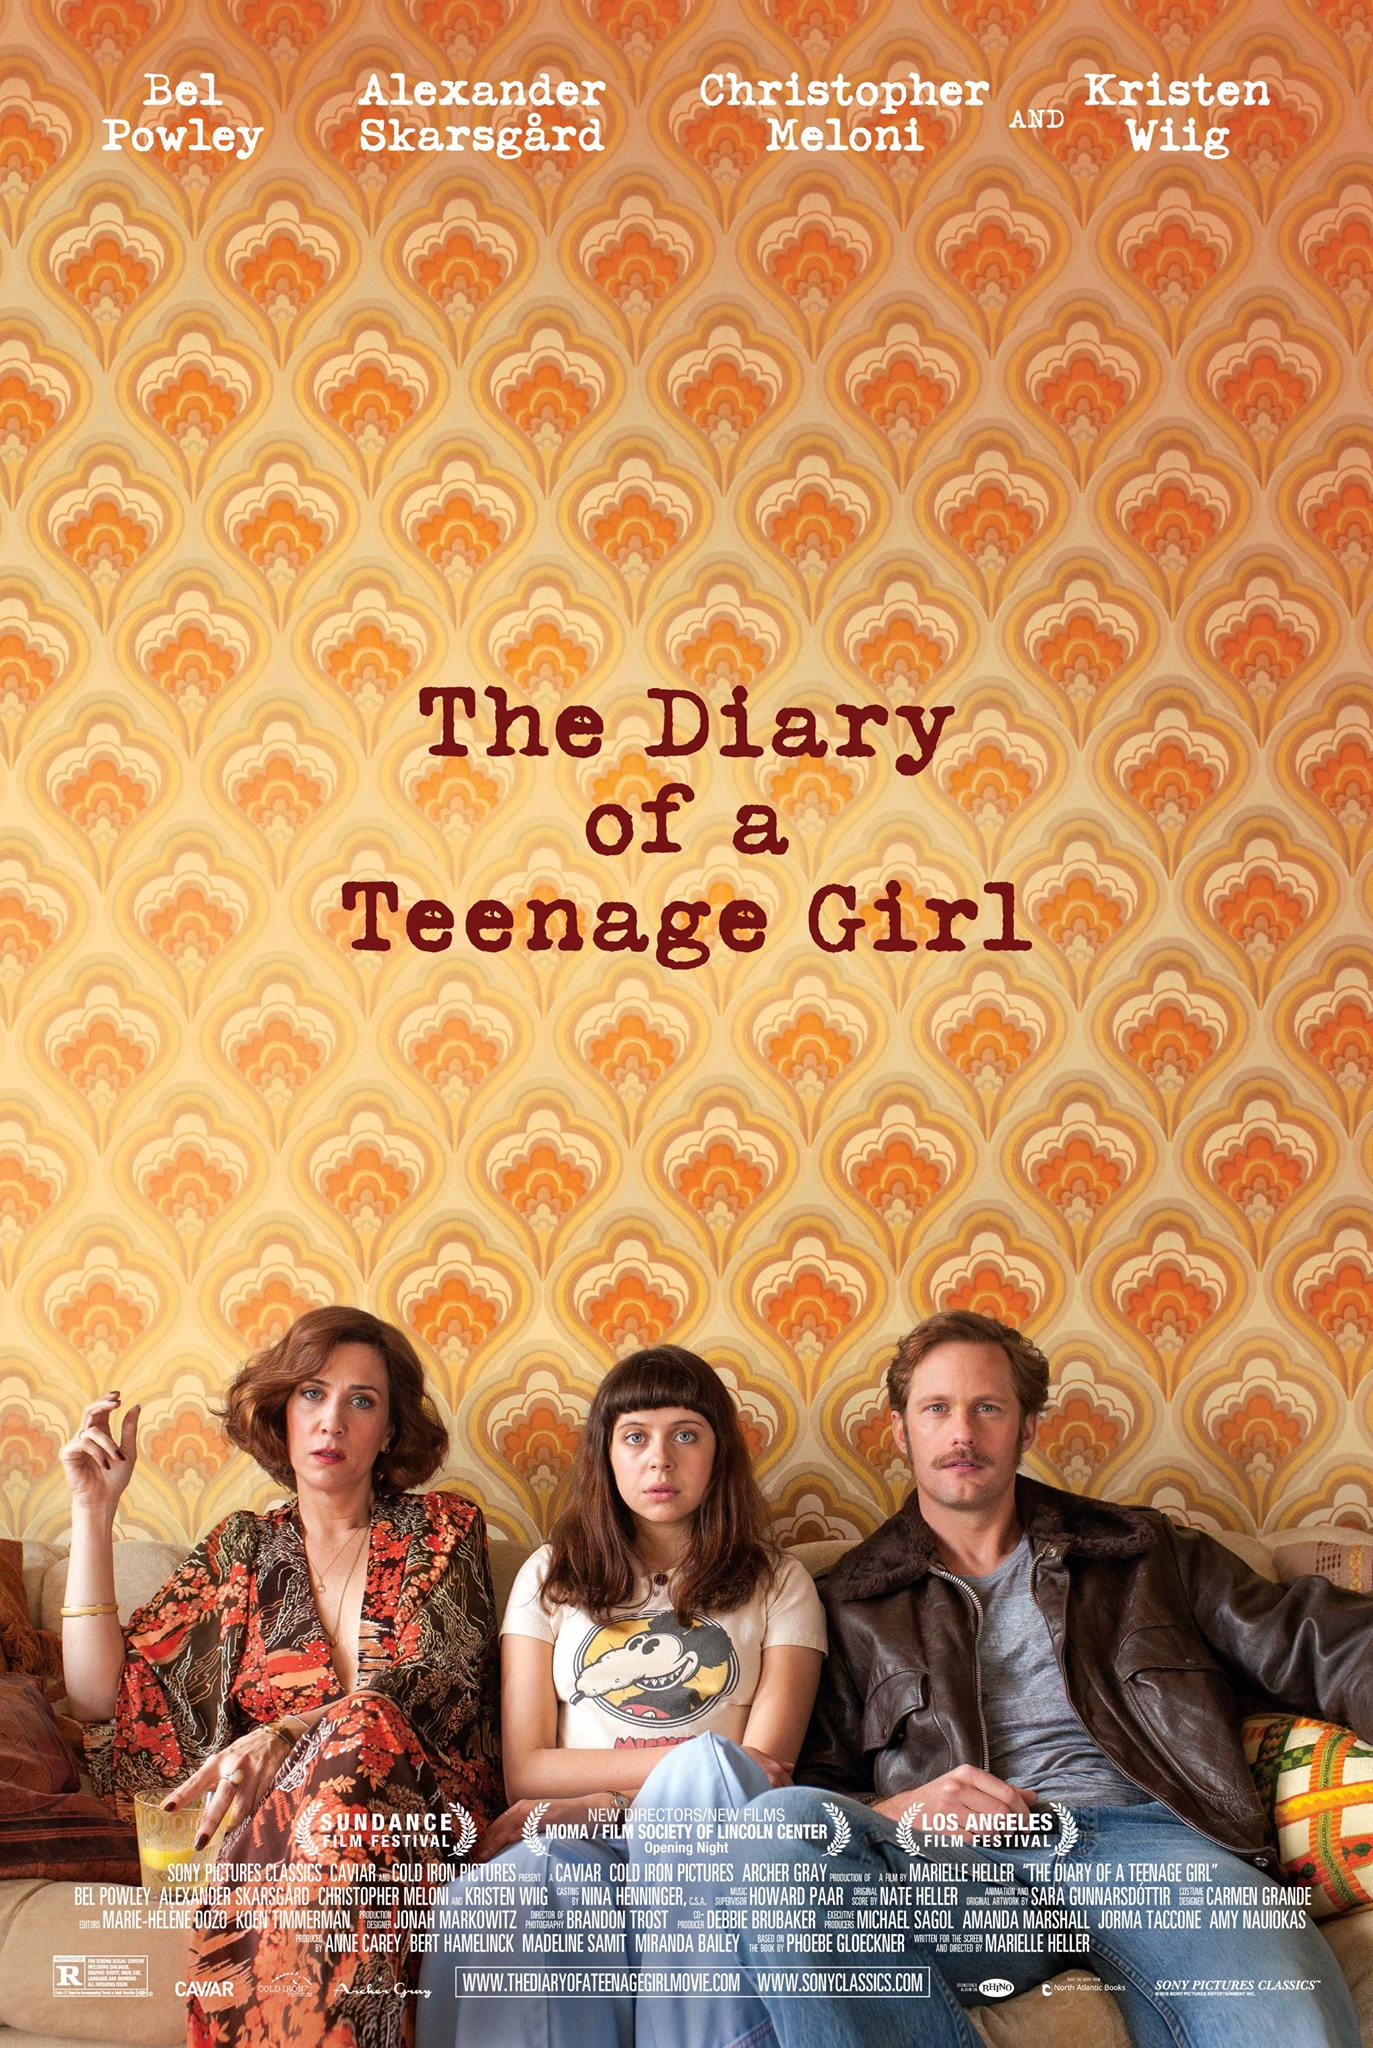 THE DIARY OF A TEENAGE GIRL-Poster-23Junho2015-01